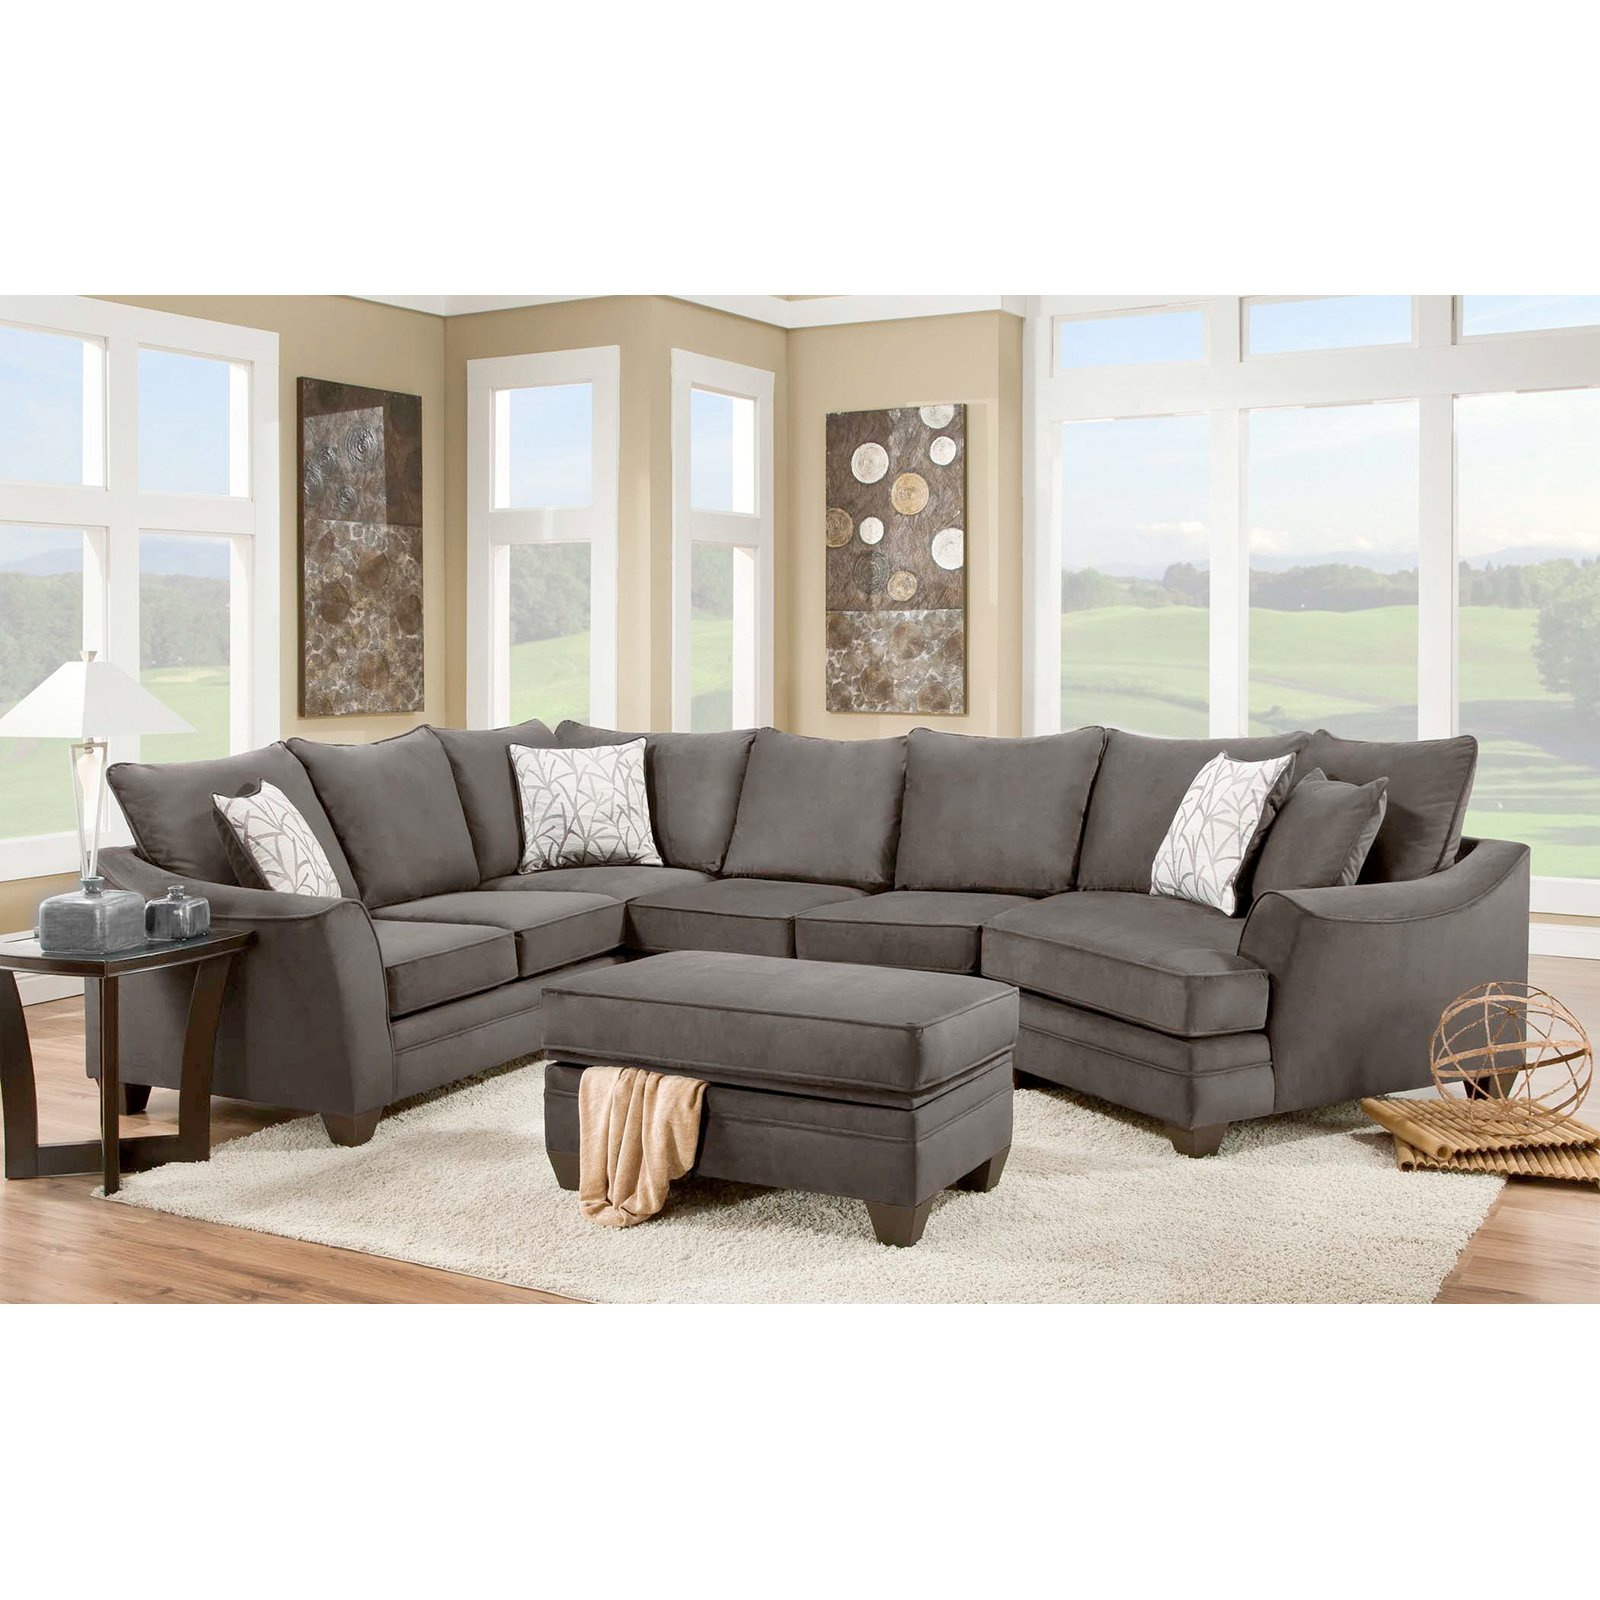 Chelsea Home Furniture Cupertino 3 Piece Sectional Sofa Walmart Com